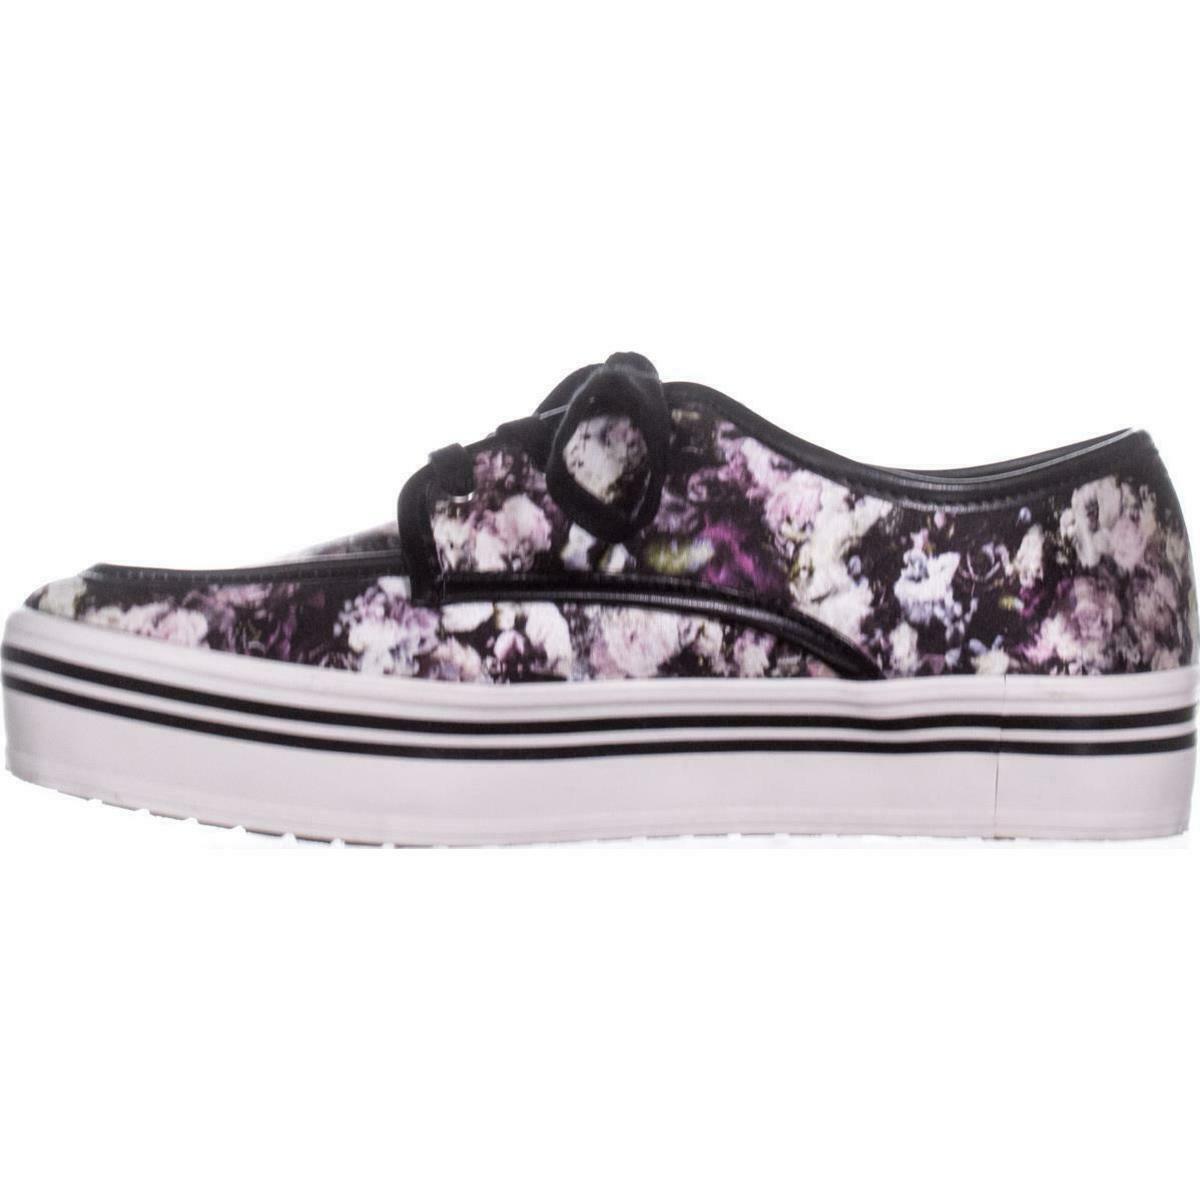 DV by Dolce Vita Jaimee Platform Fashion Sneakers 764, Floral Print, 8.5 US